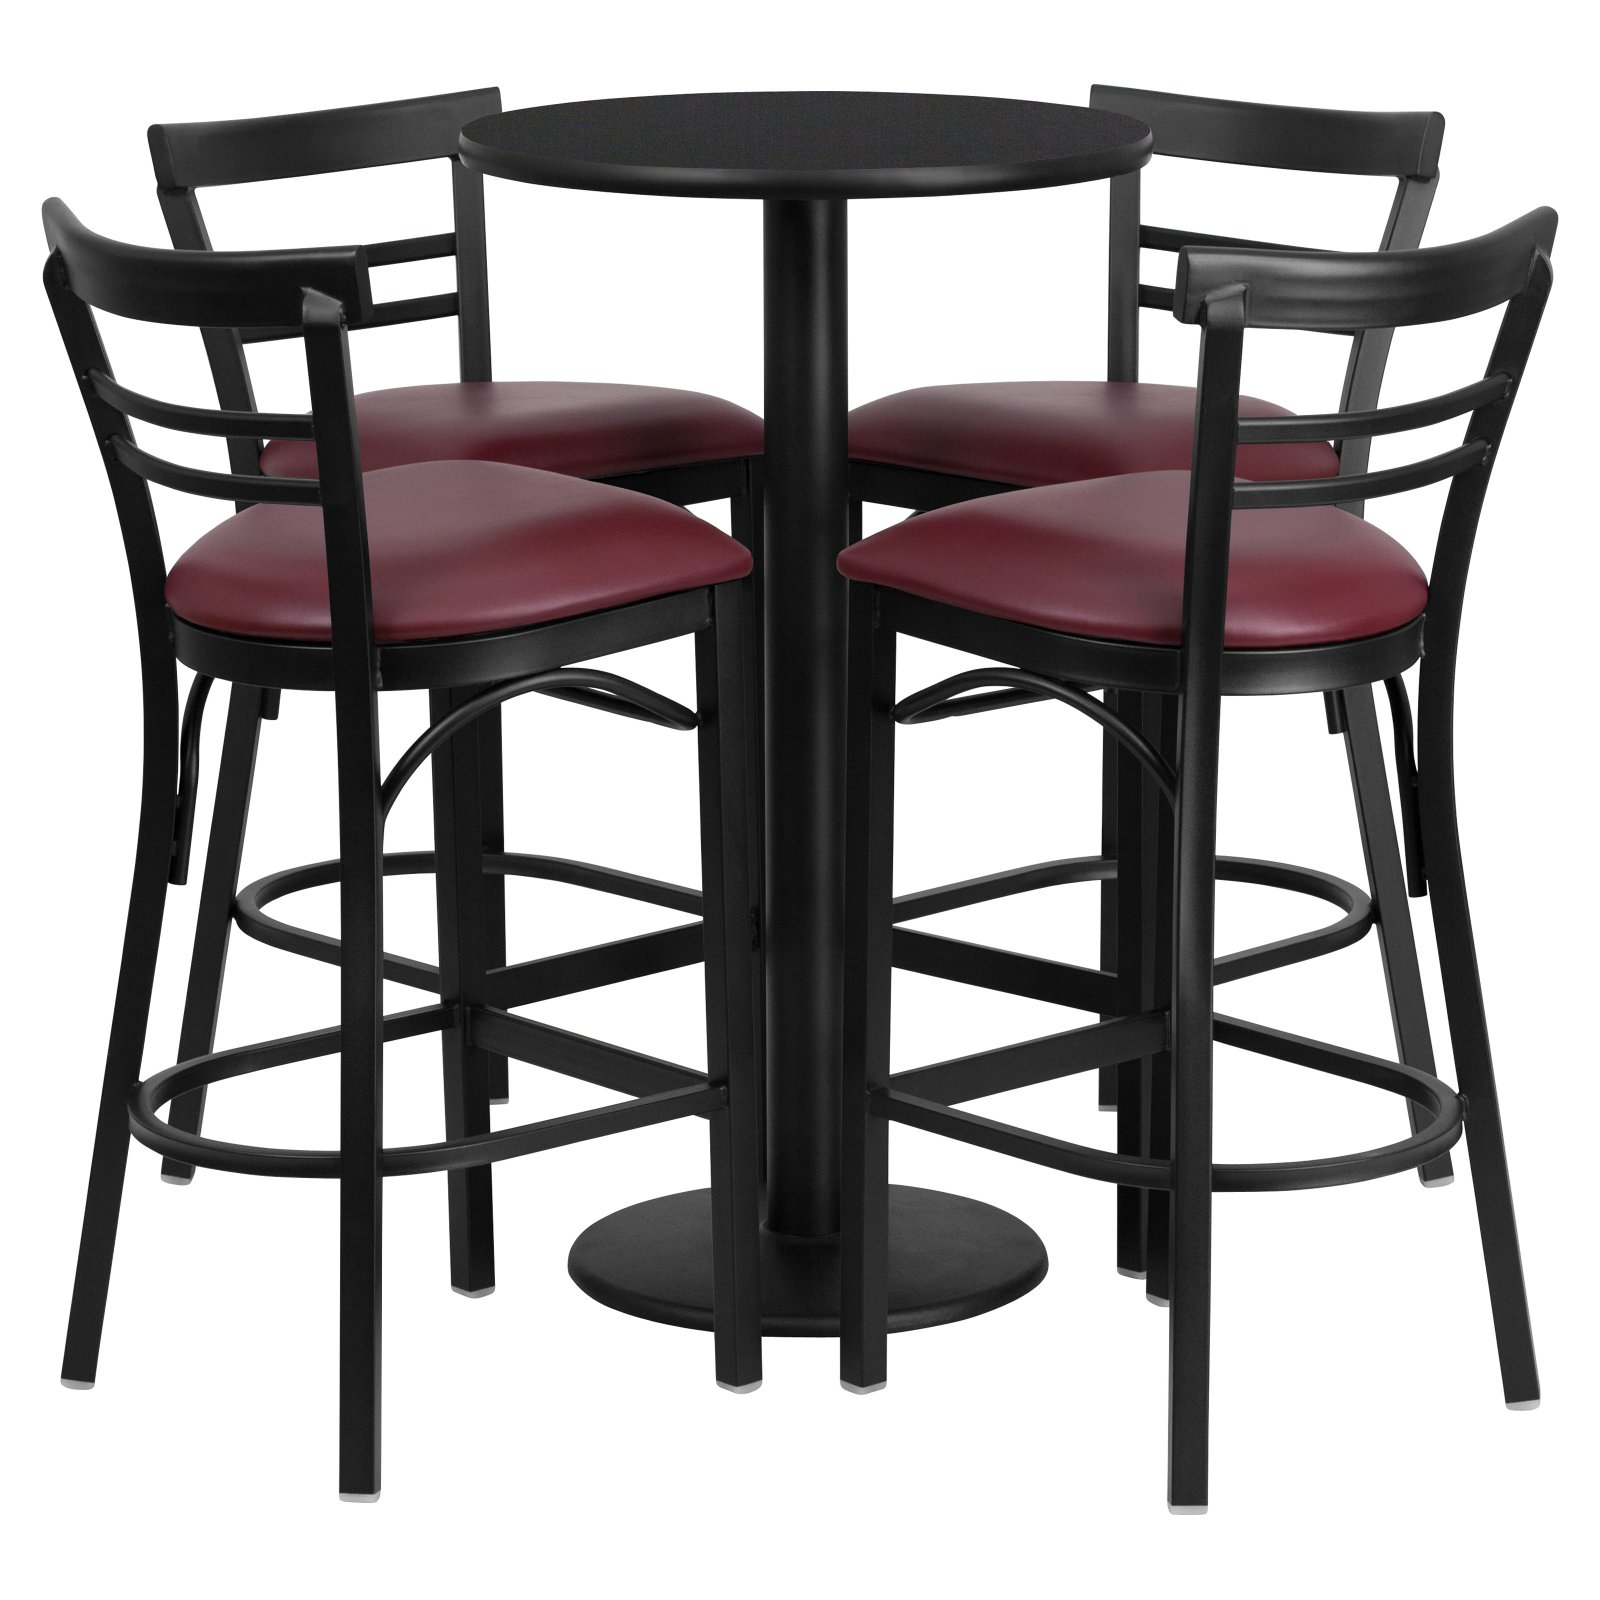 Flash Furniture 24'' Round Black Laminate Table Set with 4 Ladder Back Metal Barstools, Burgundy Vinyl Seat